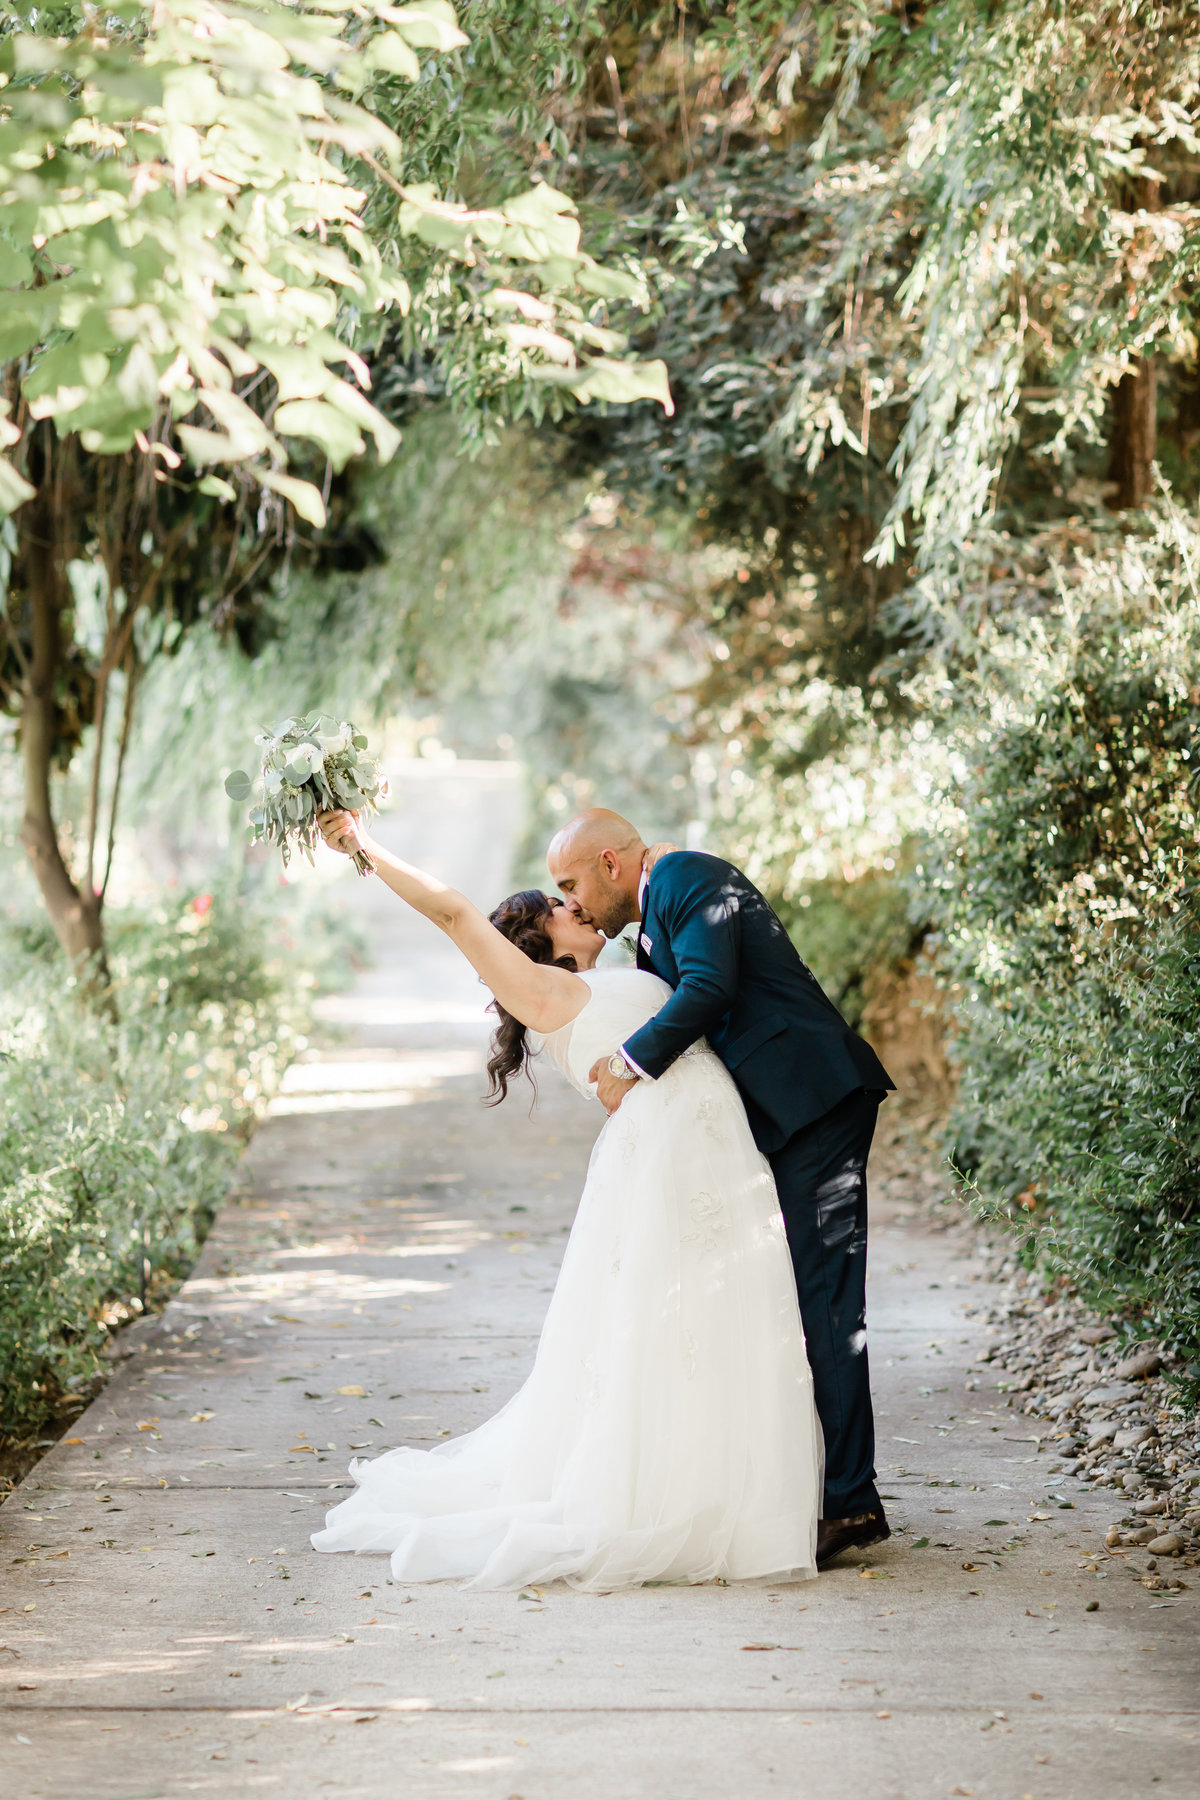 Claudia and Aldofo had their wedding in a garden paradise with trees and pathways.